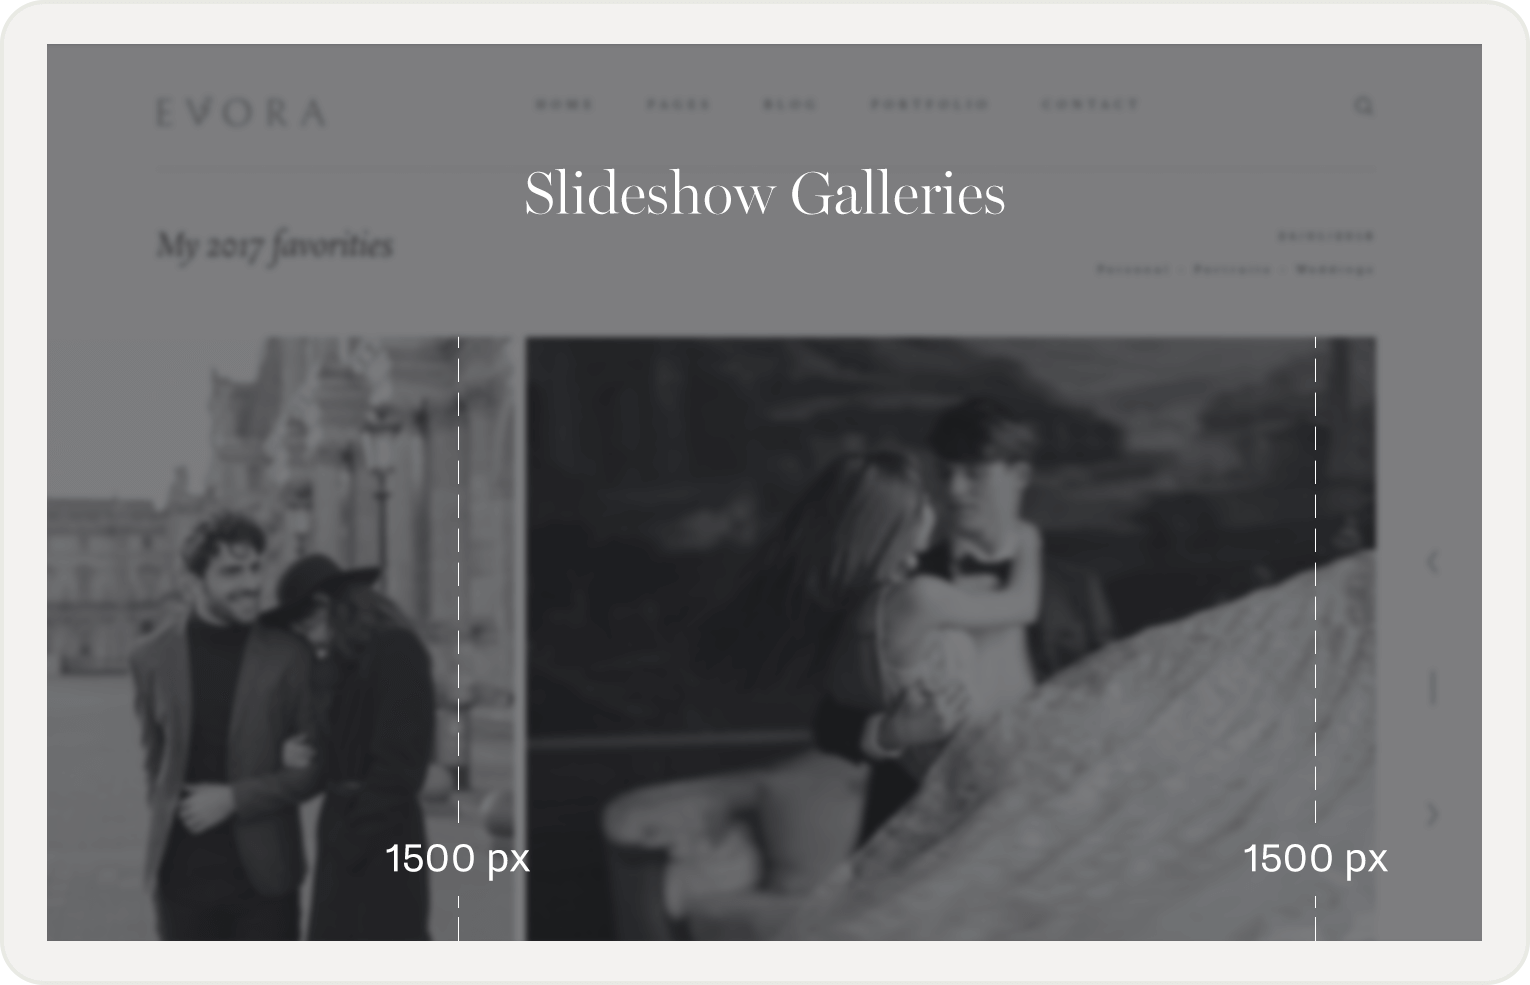 slideshow galleries image sizes